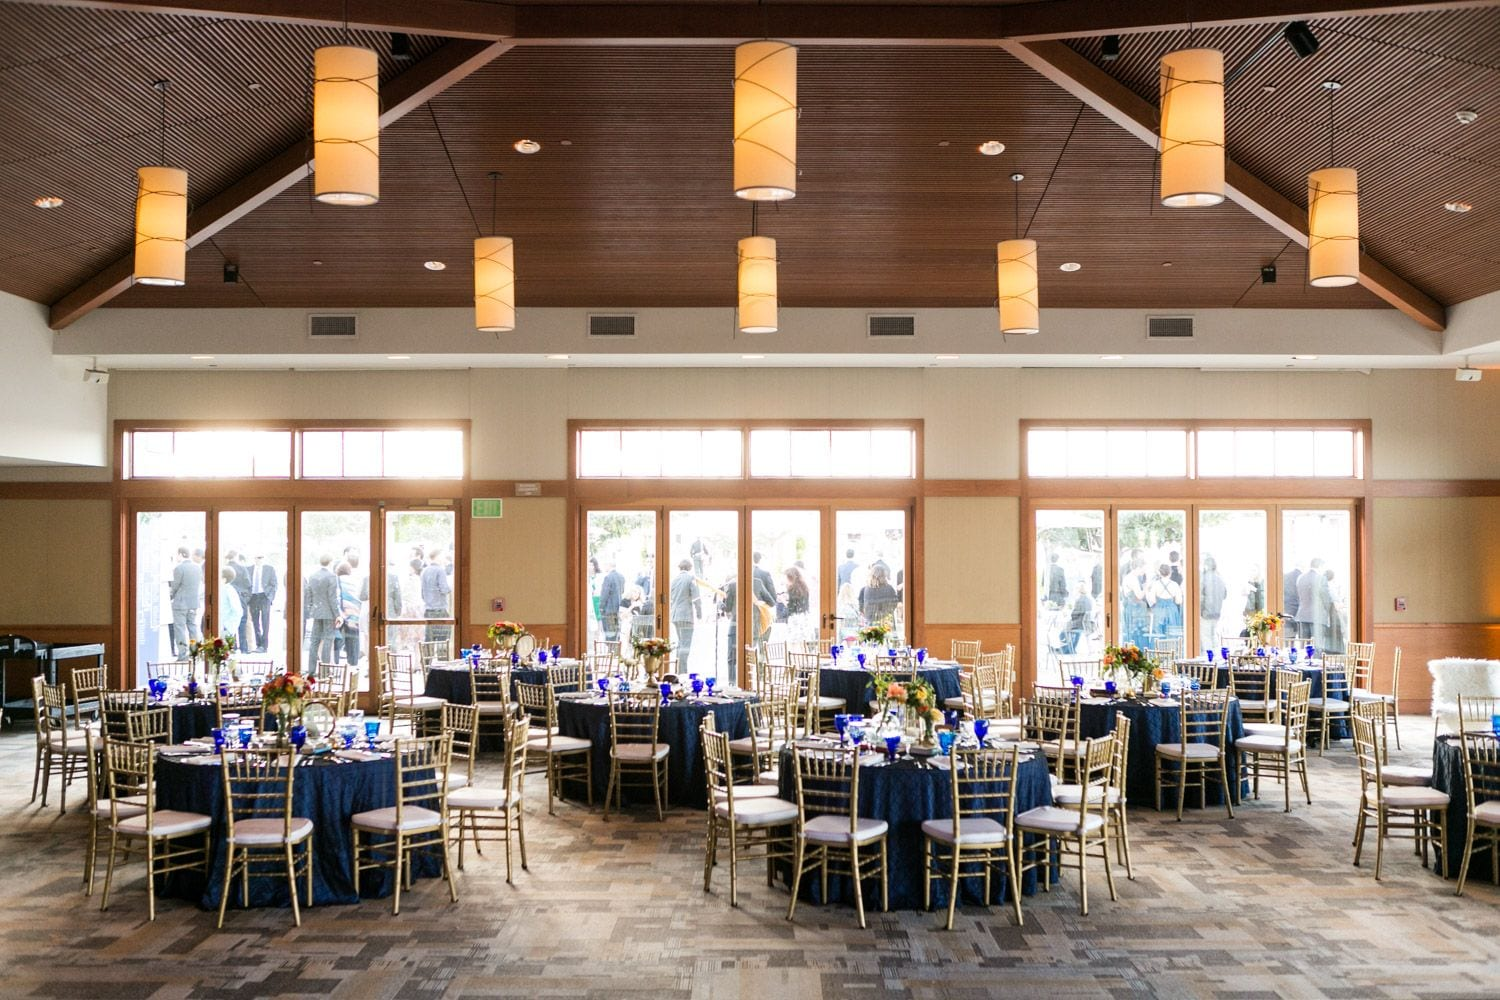 cater weddings and events at coronado community center - view our venue partnerships | snake oil cocktail co.